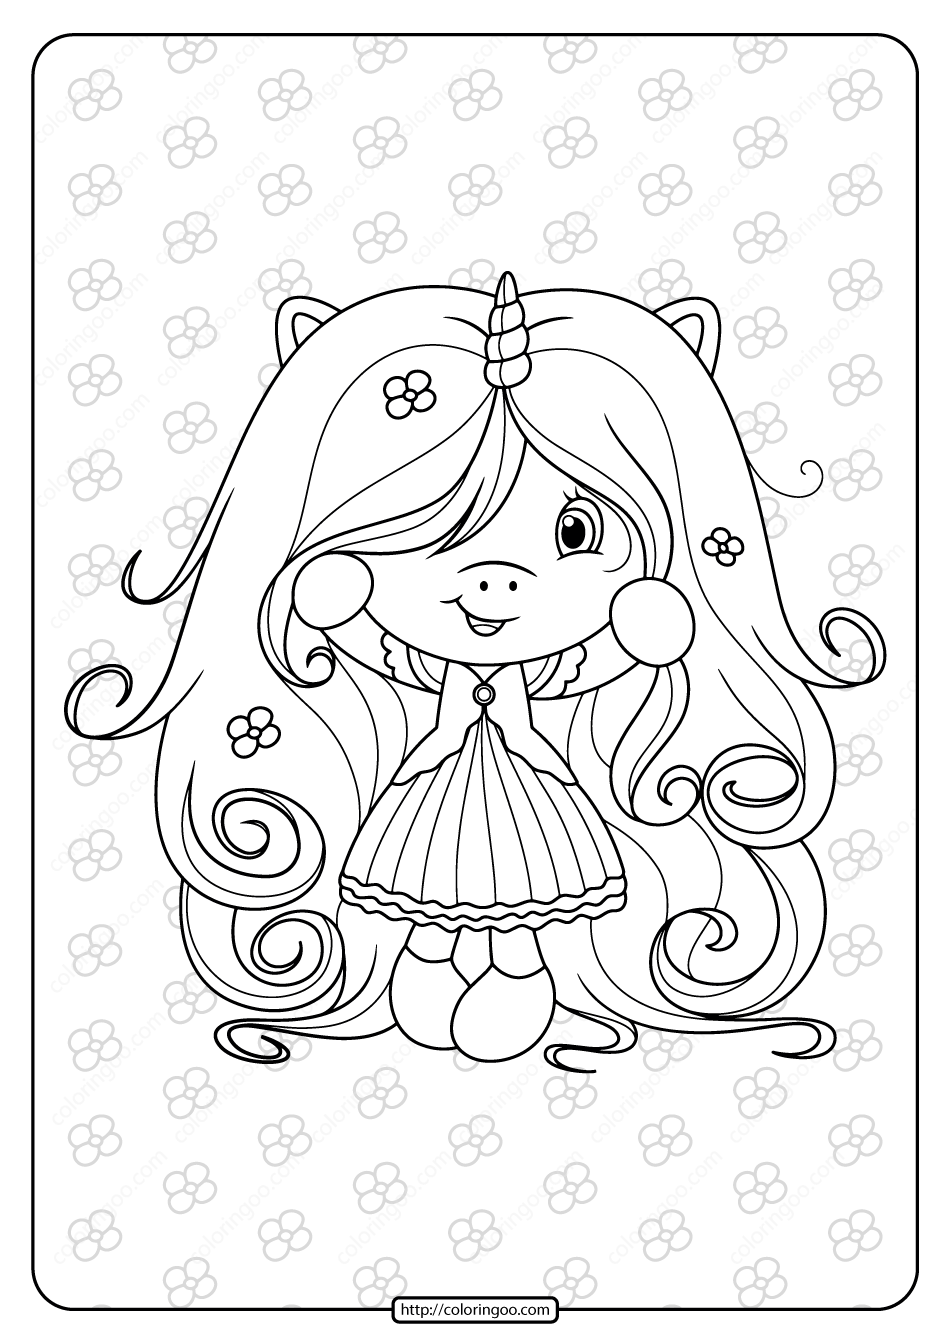 Free Printable Cute Girl Unicorn Coloring Page